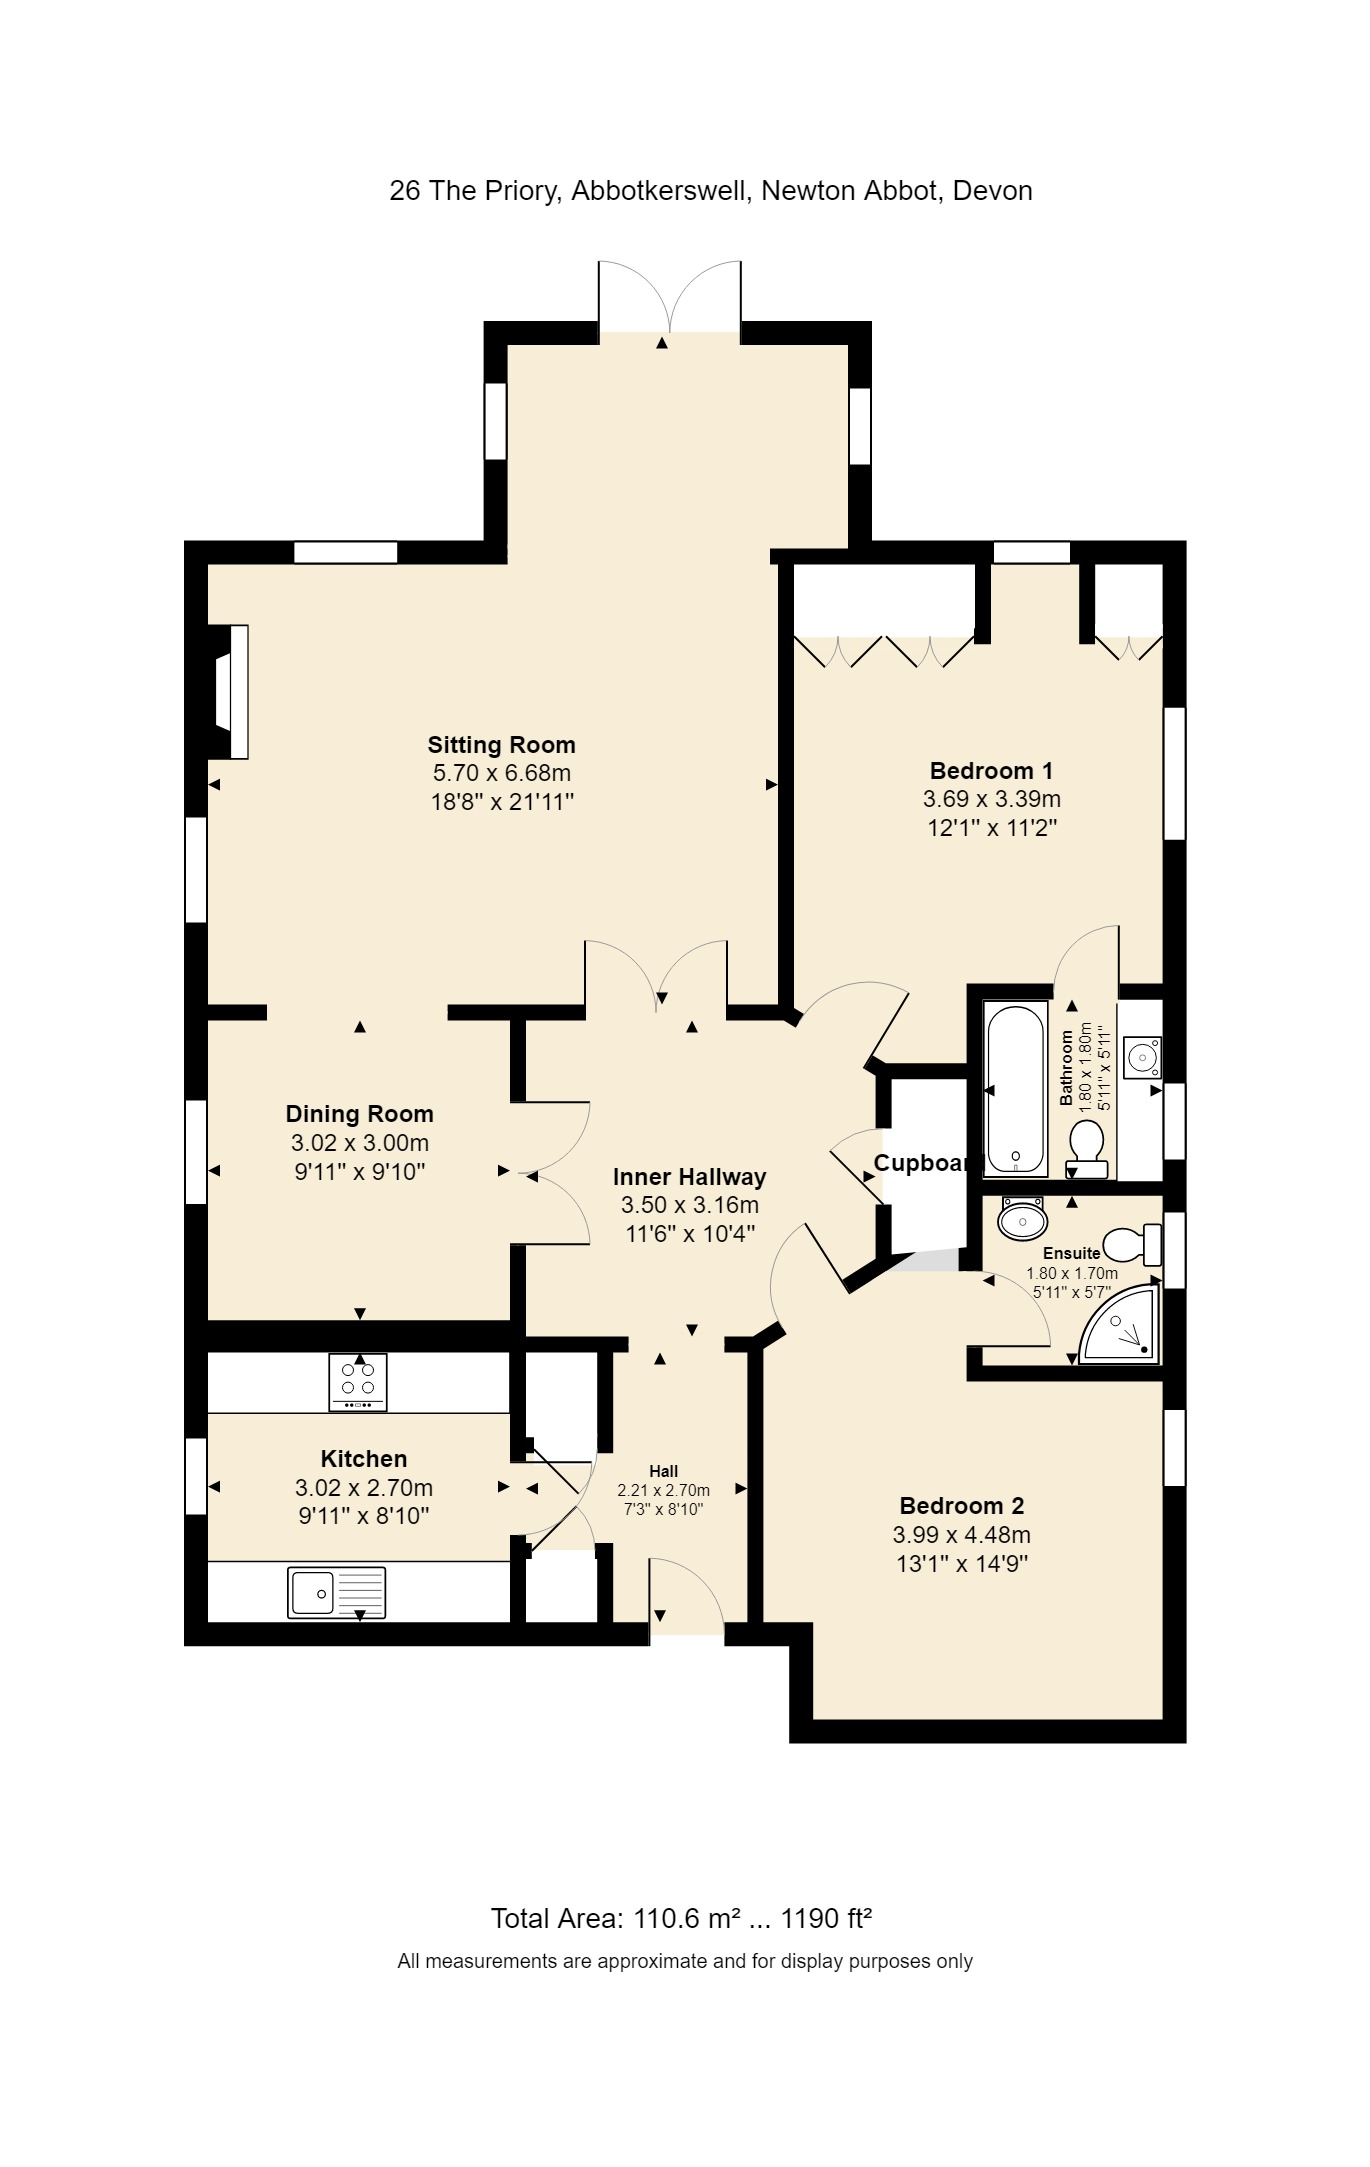 26 The Priory Floorplan